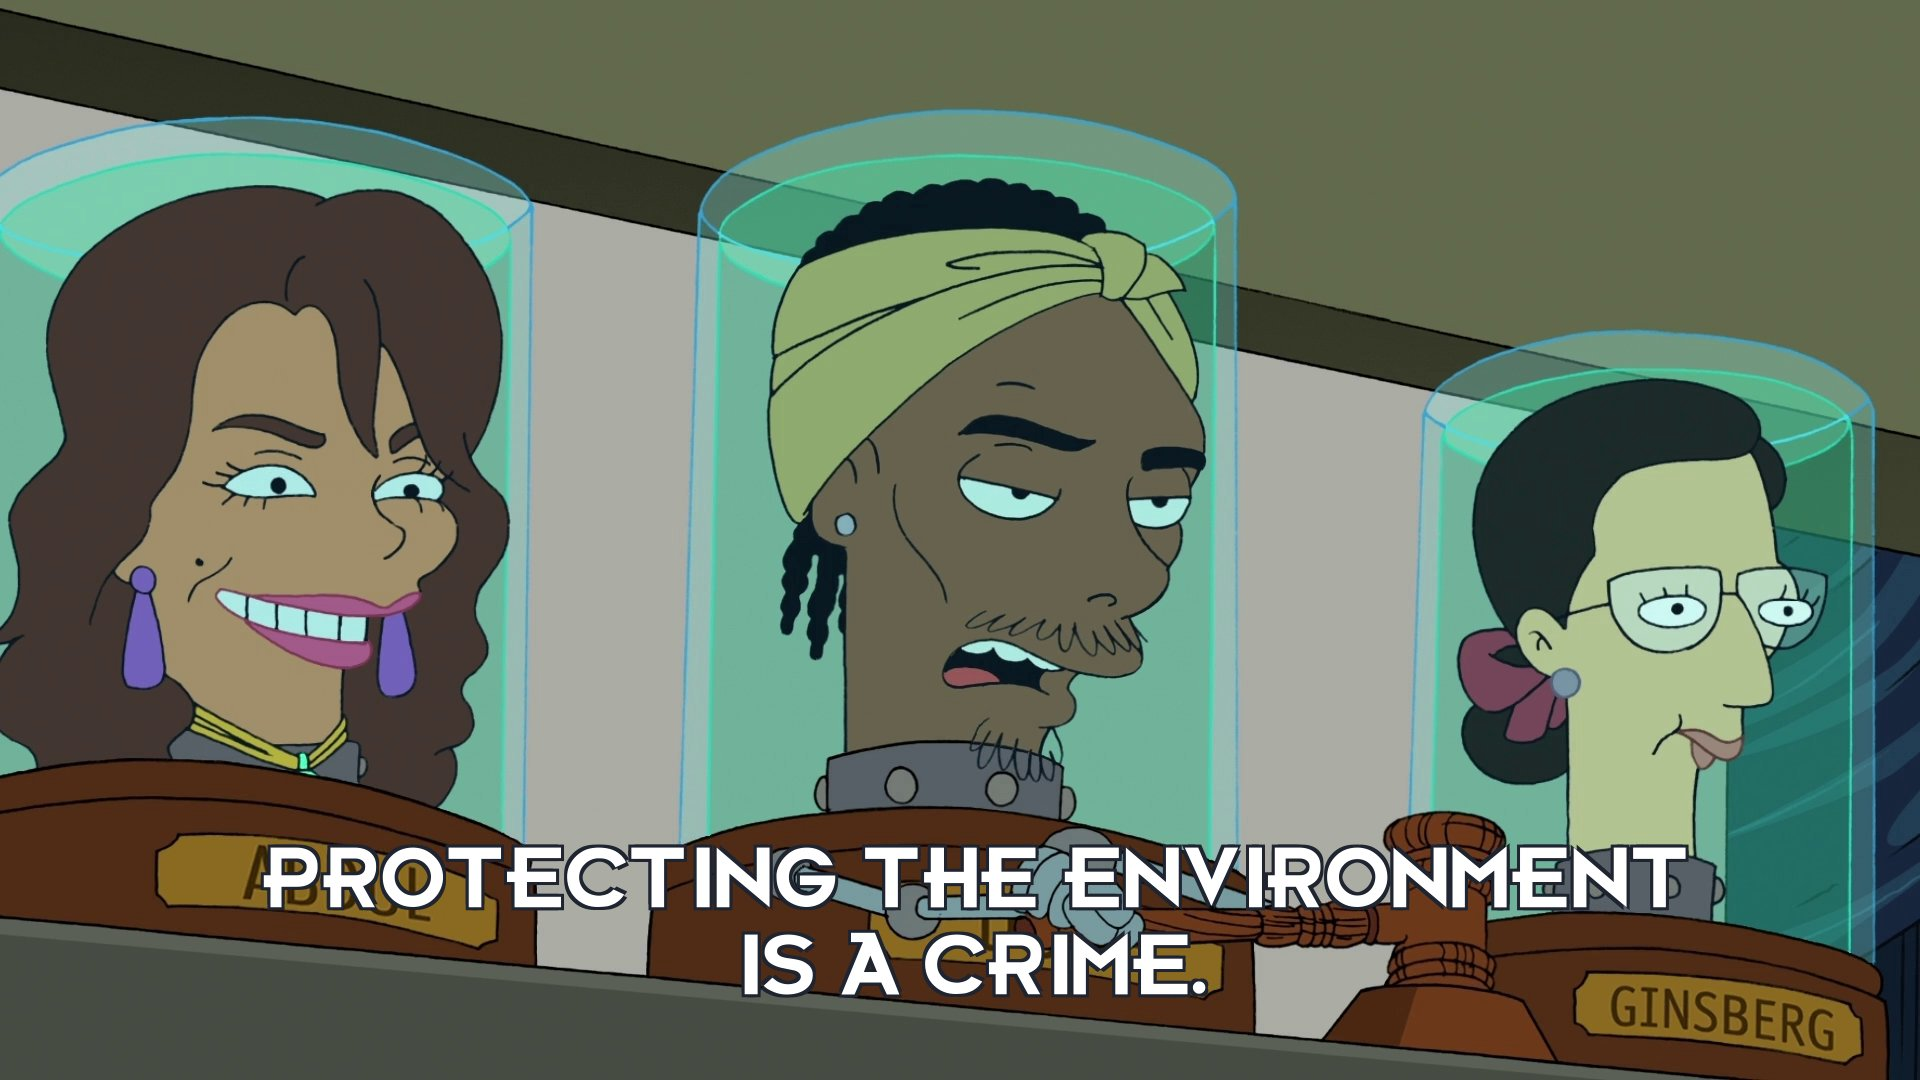 Snoop Dogg's head: Protecting the environment is a crime.